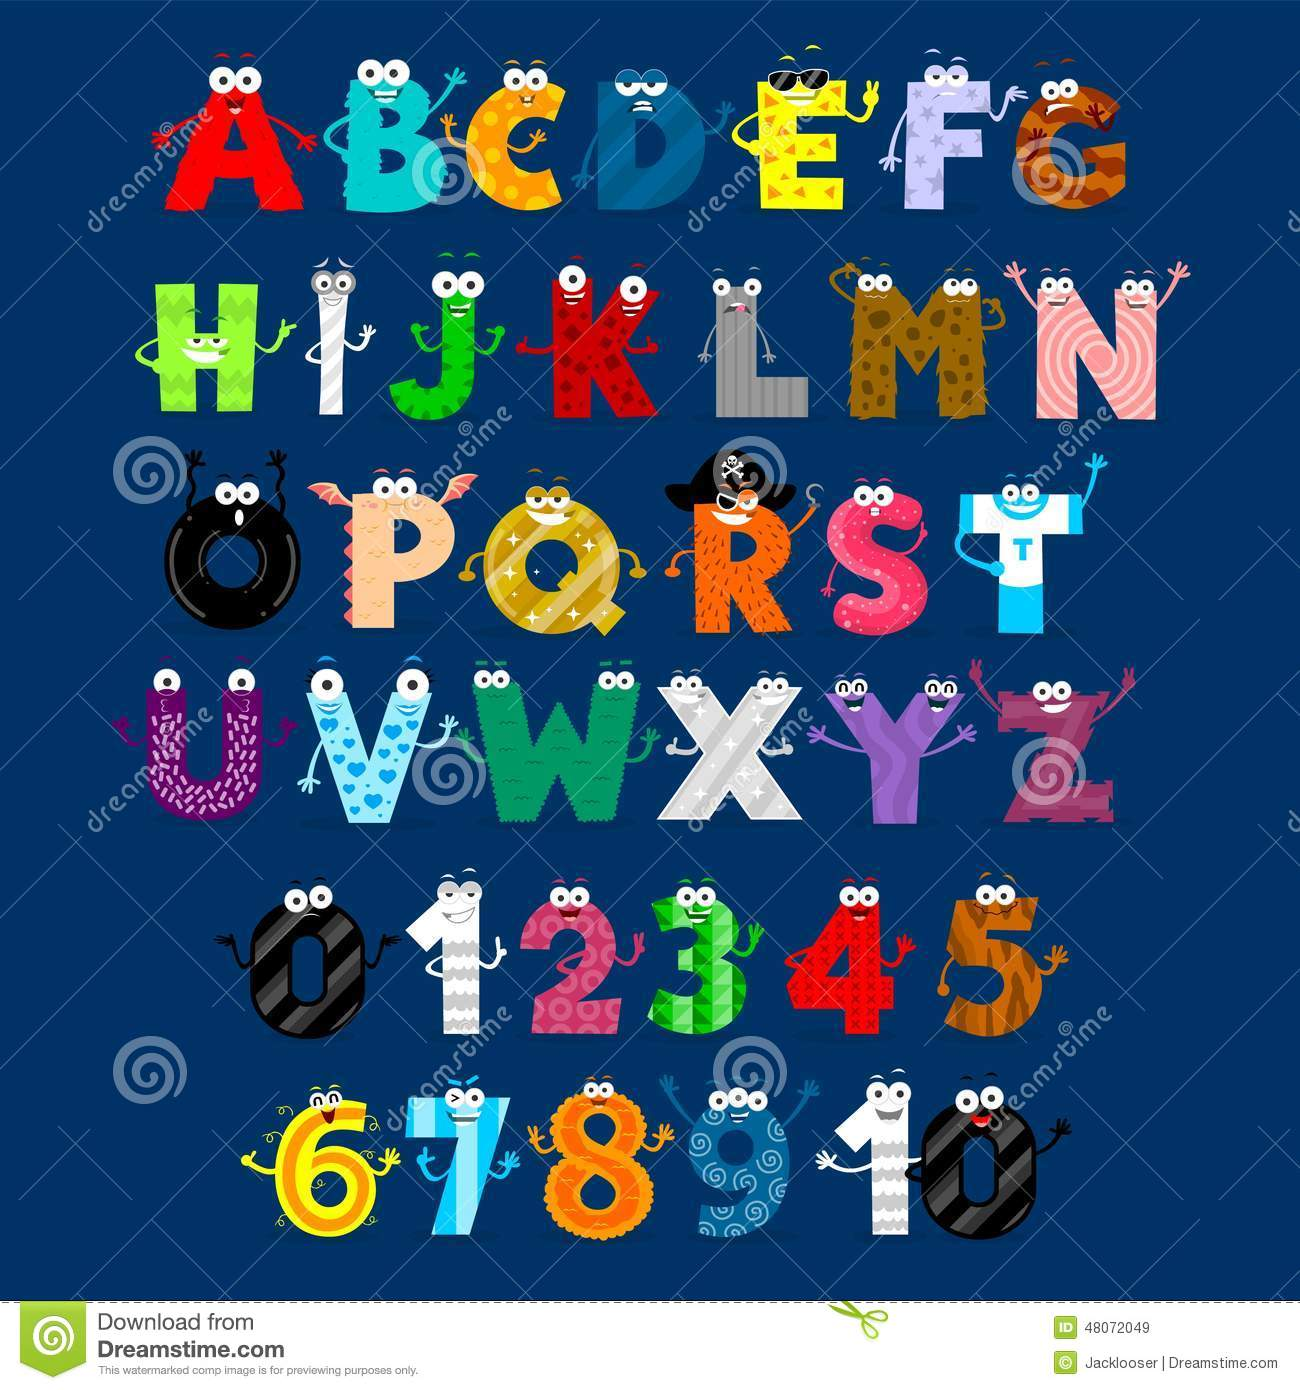 5 Letter Cartoon Characters : Alphabet numbers monster cartoon characters stock vector